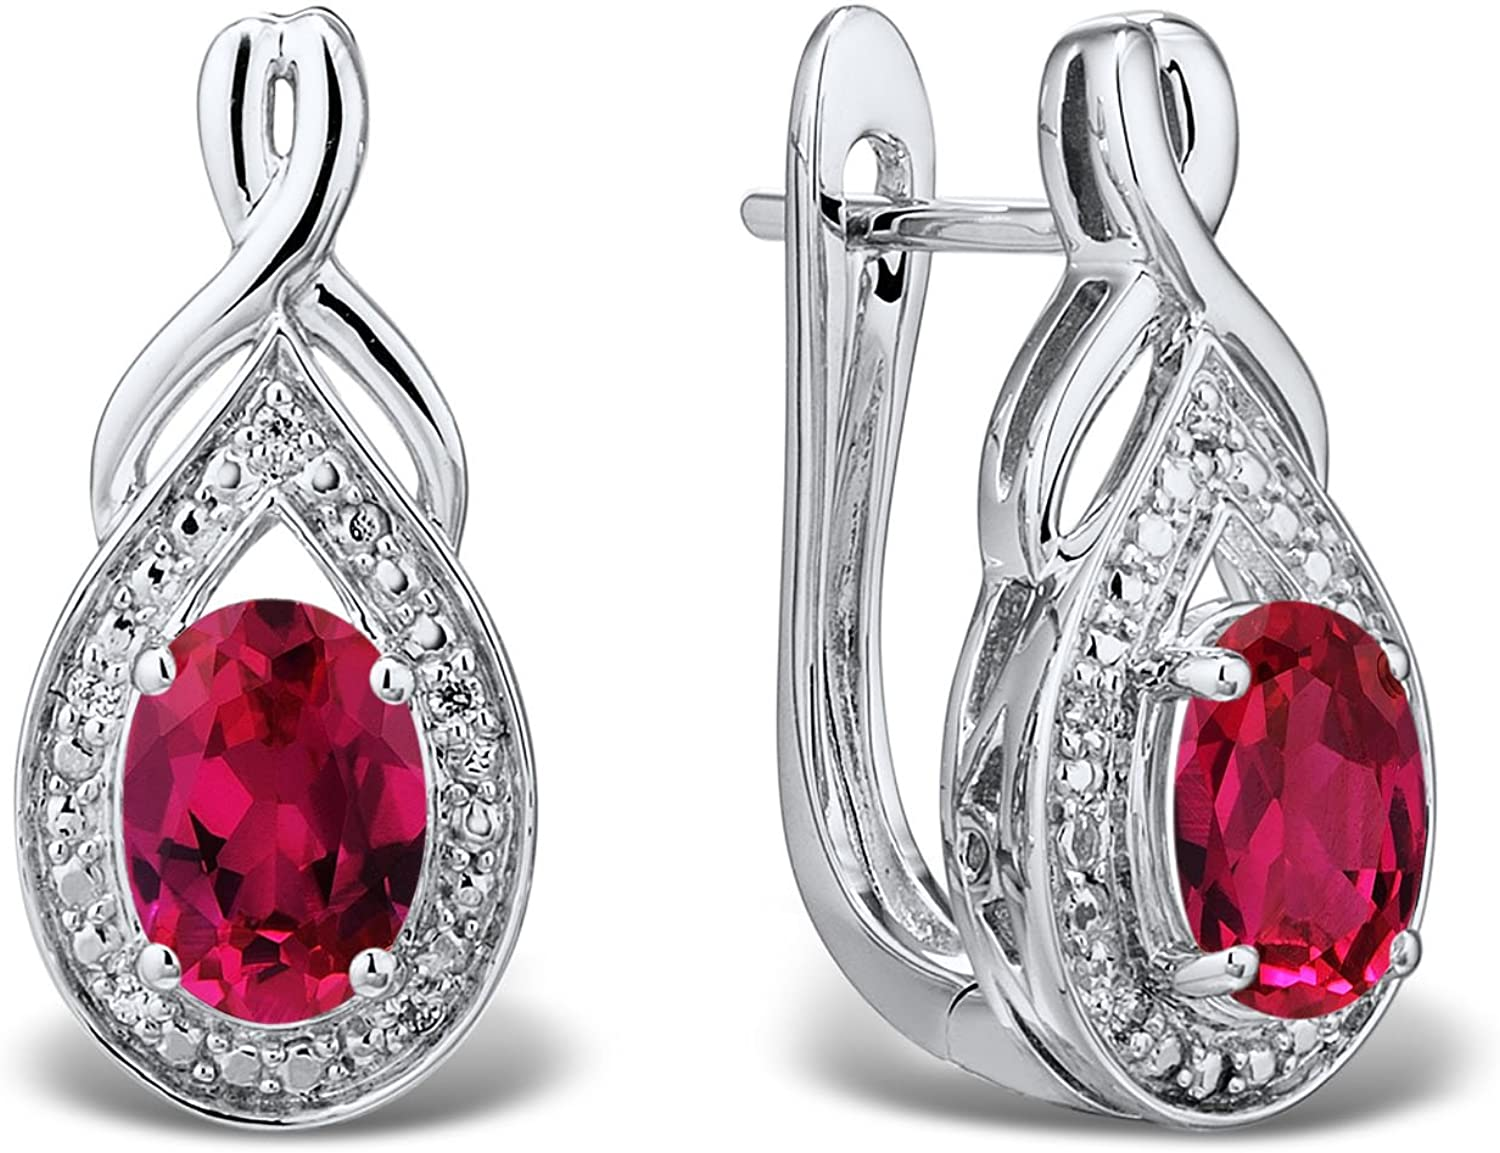 925 Sterling Silver Rhodium-plated Polished Oval Cut Created-Ruby Post Earrings